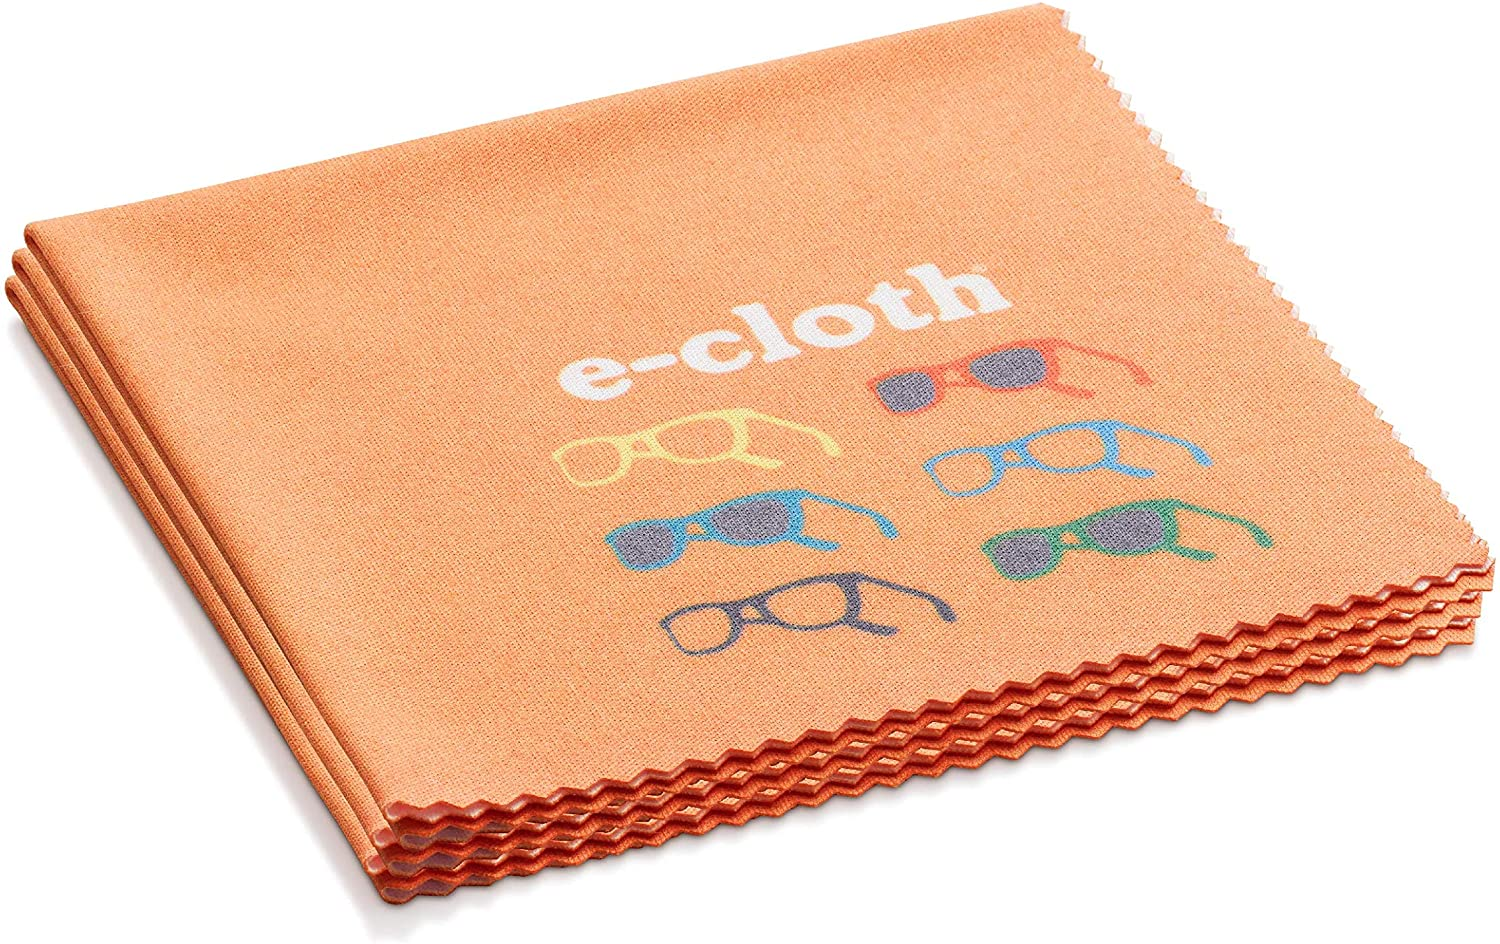 E-Cloth Glasses Microfiber Cleaning Cloth for Cleaning Eyeglasses & Sunglasses, 3 Count